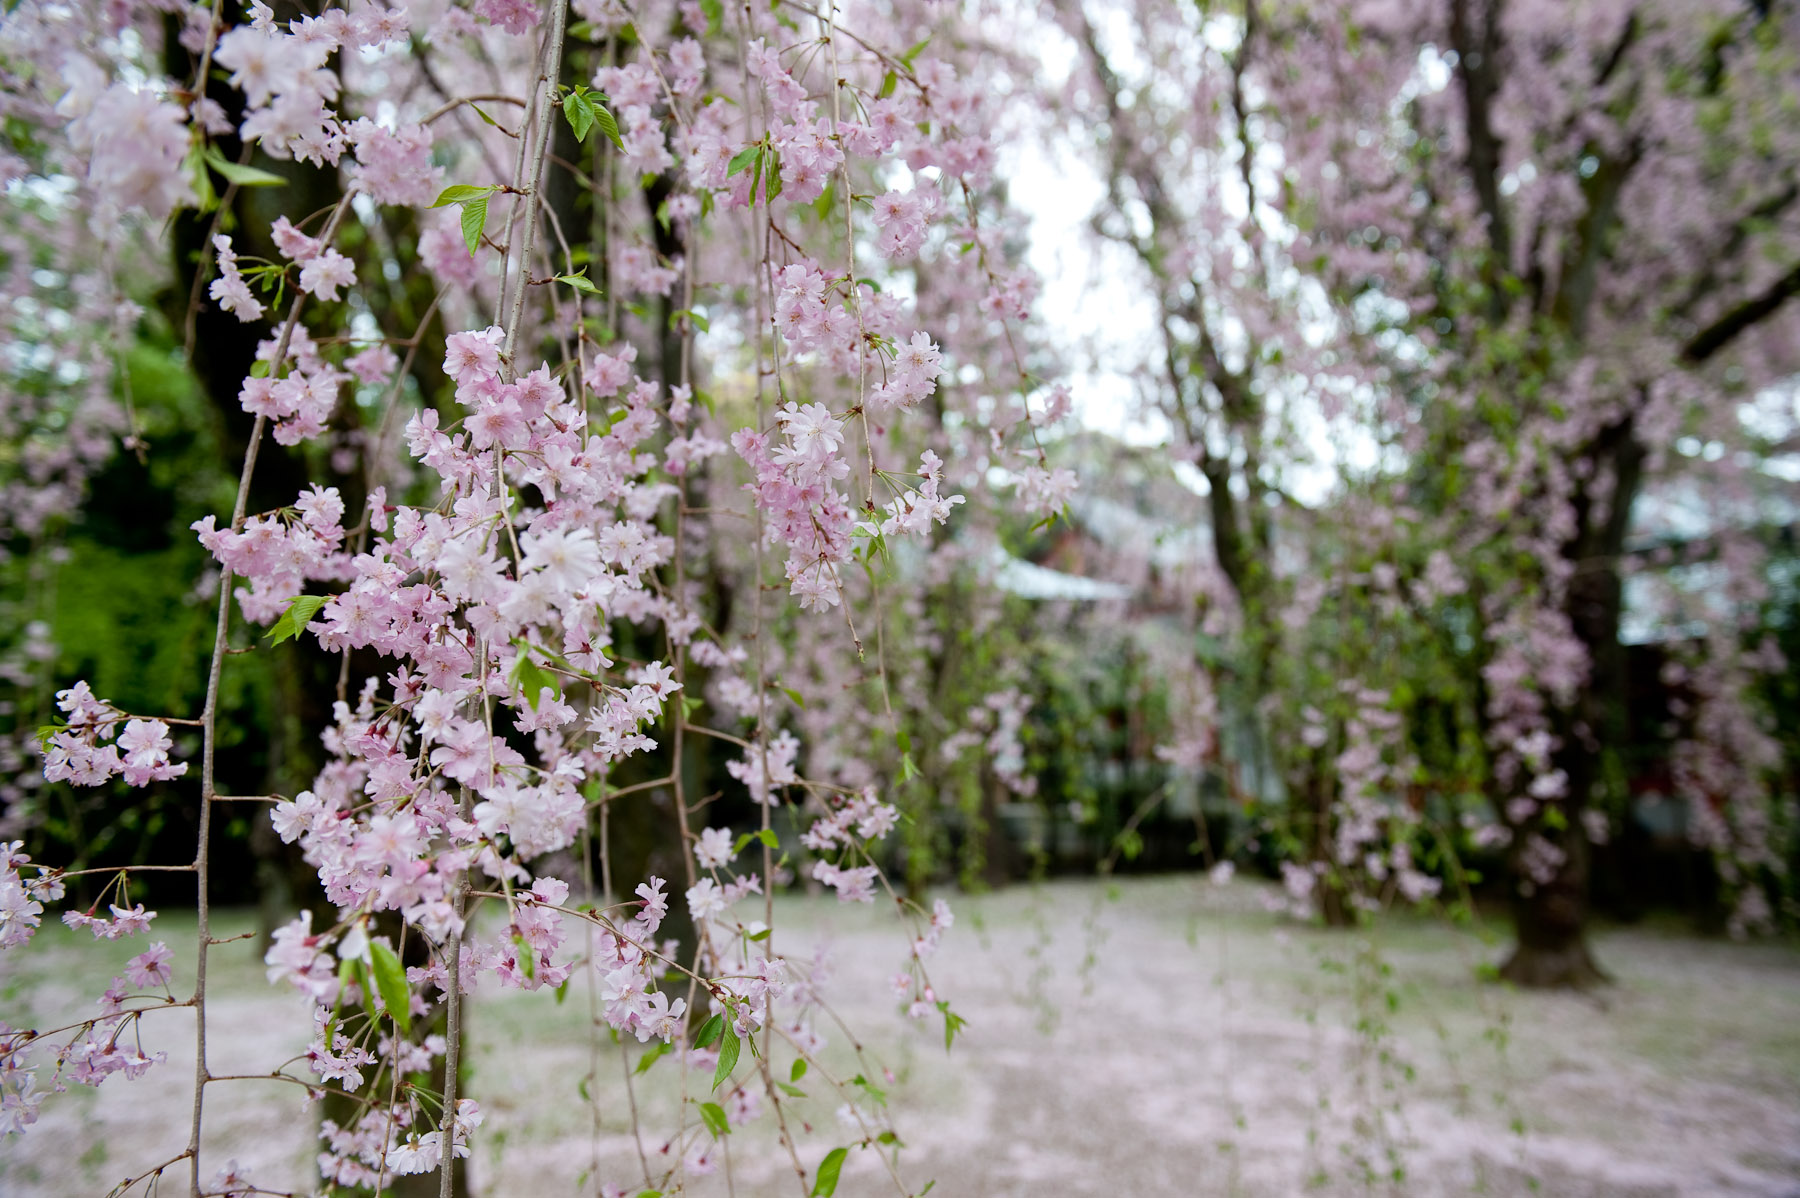 Desktop Background Image Of Long Strings Blossom Laden Shidezakura Cherry Branches